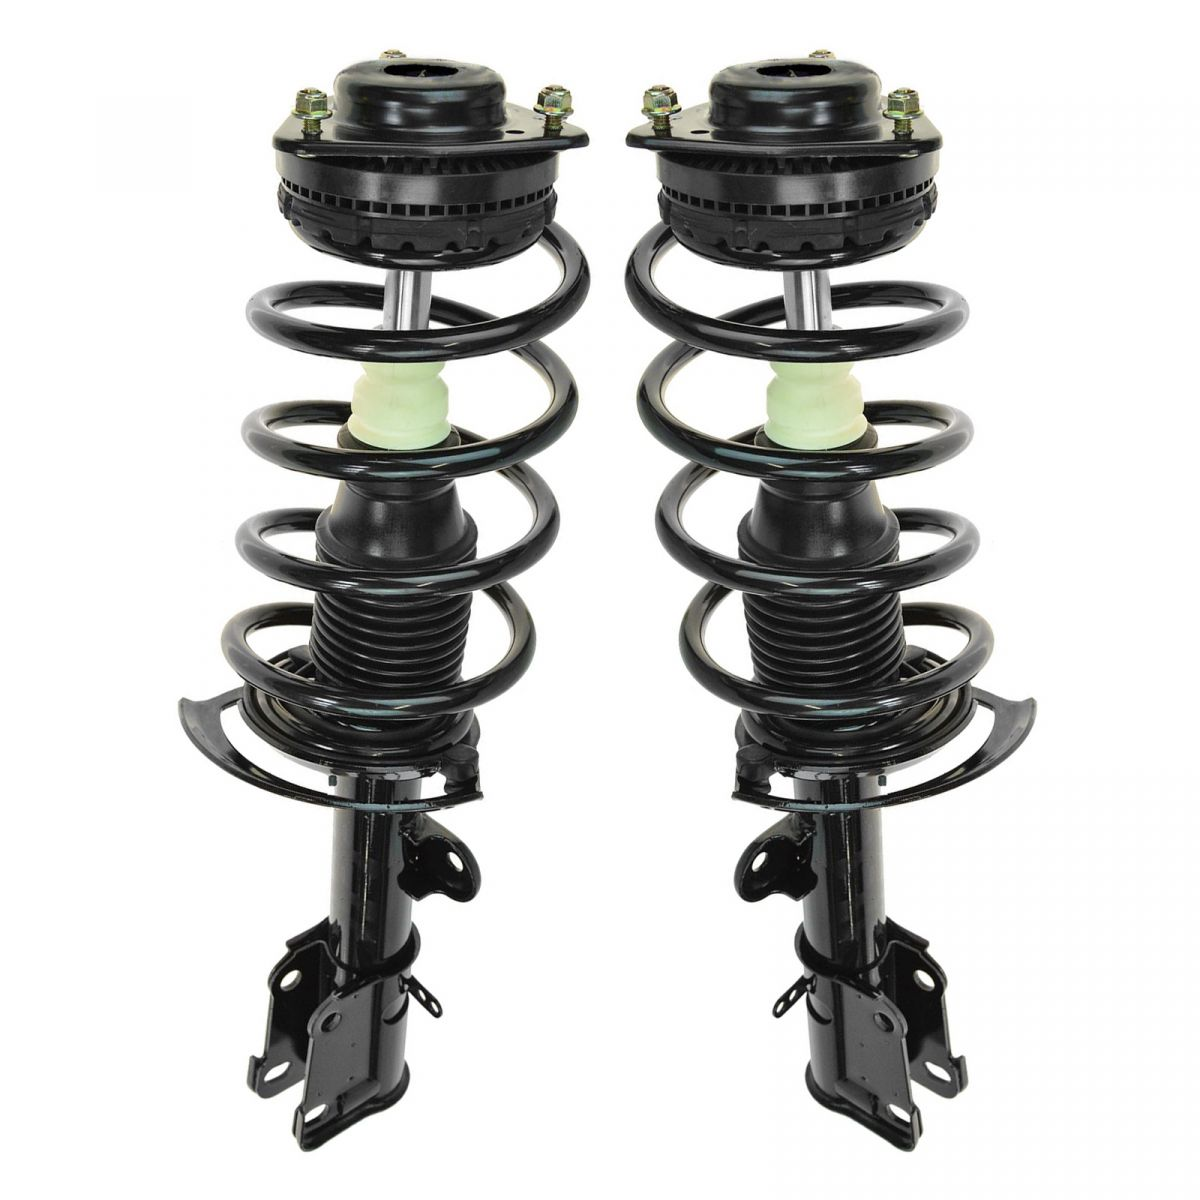 Strut /& Spring Assembly Pair Set LH Left and RH Right Front for Nissan Sentra